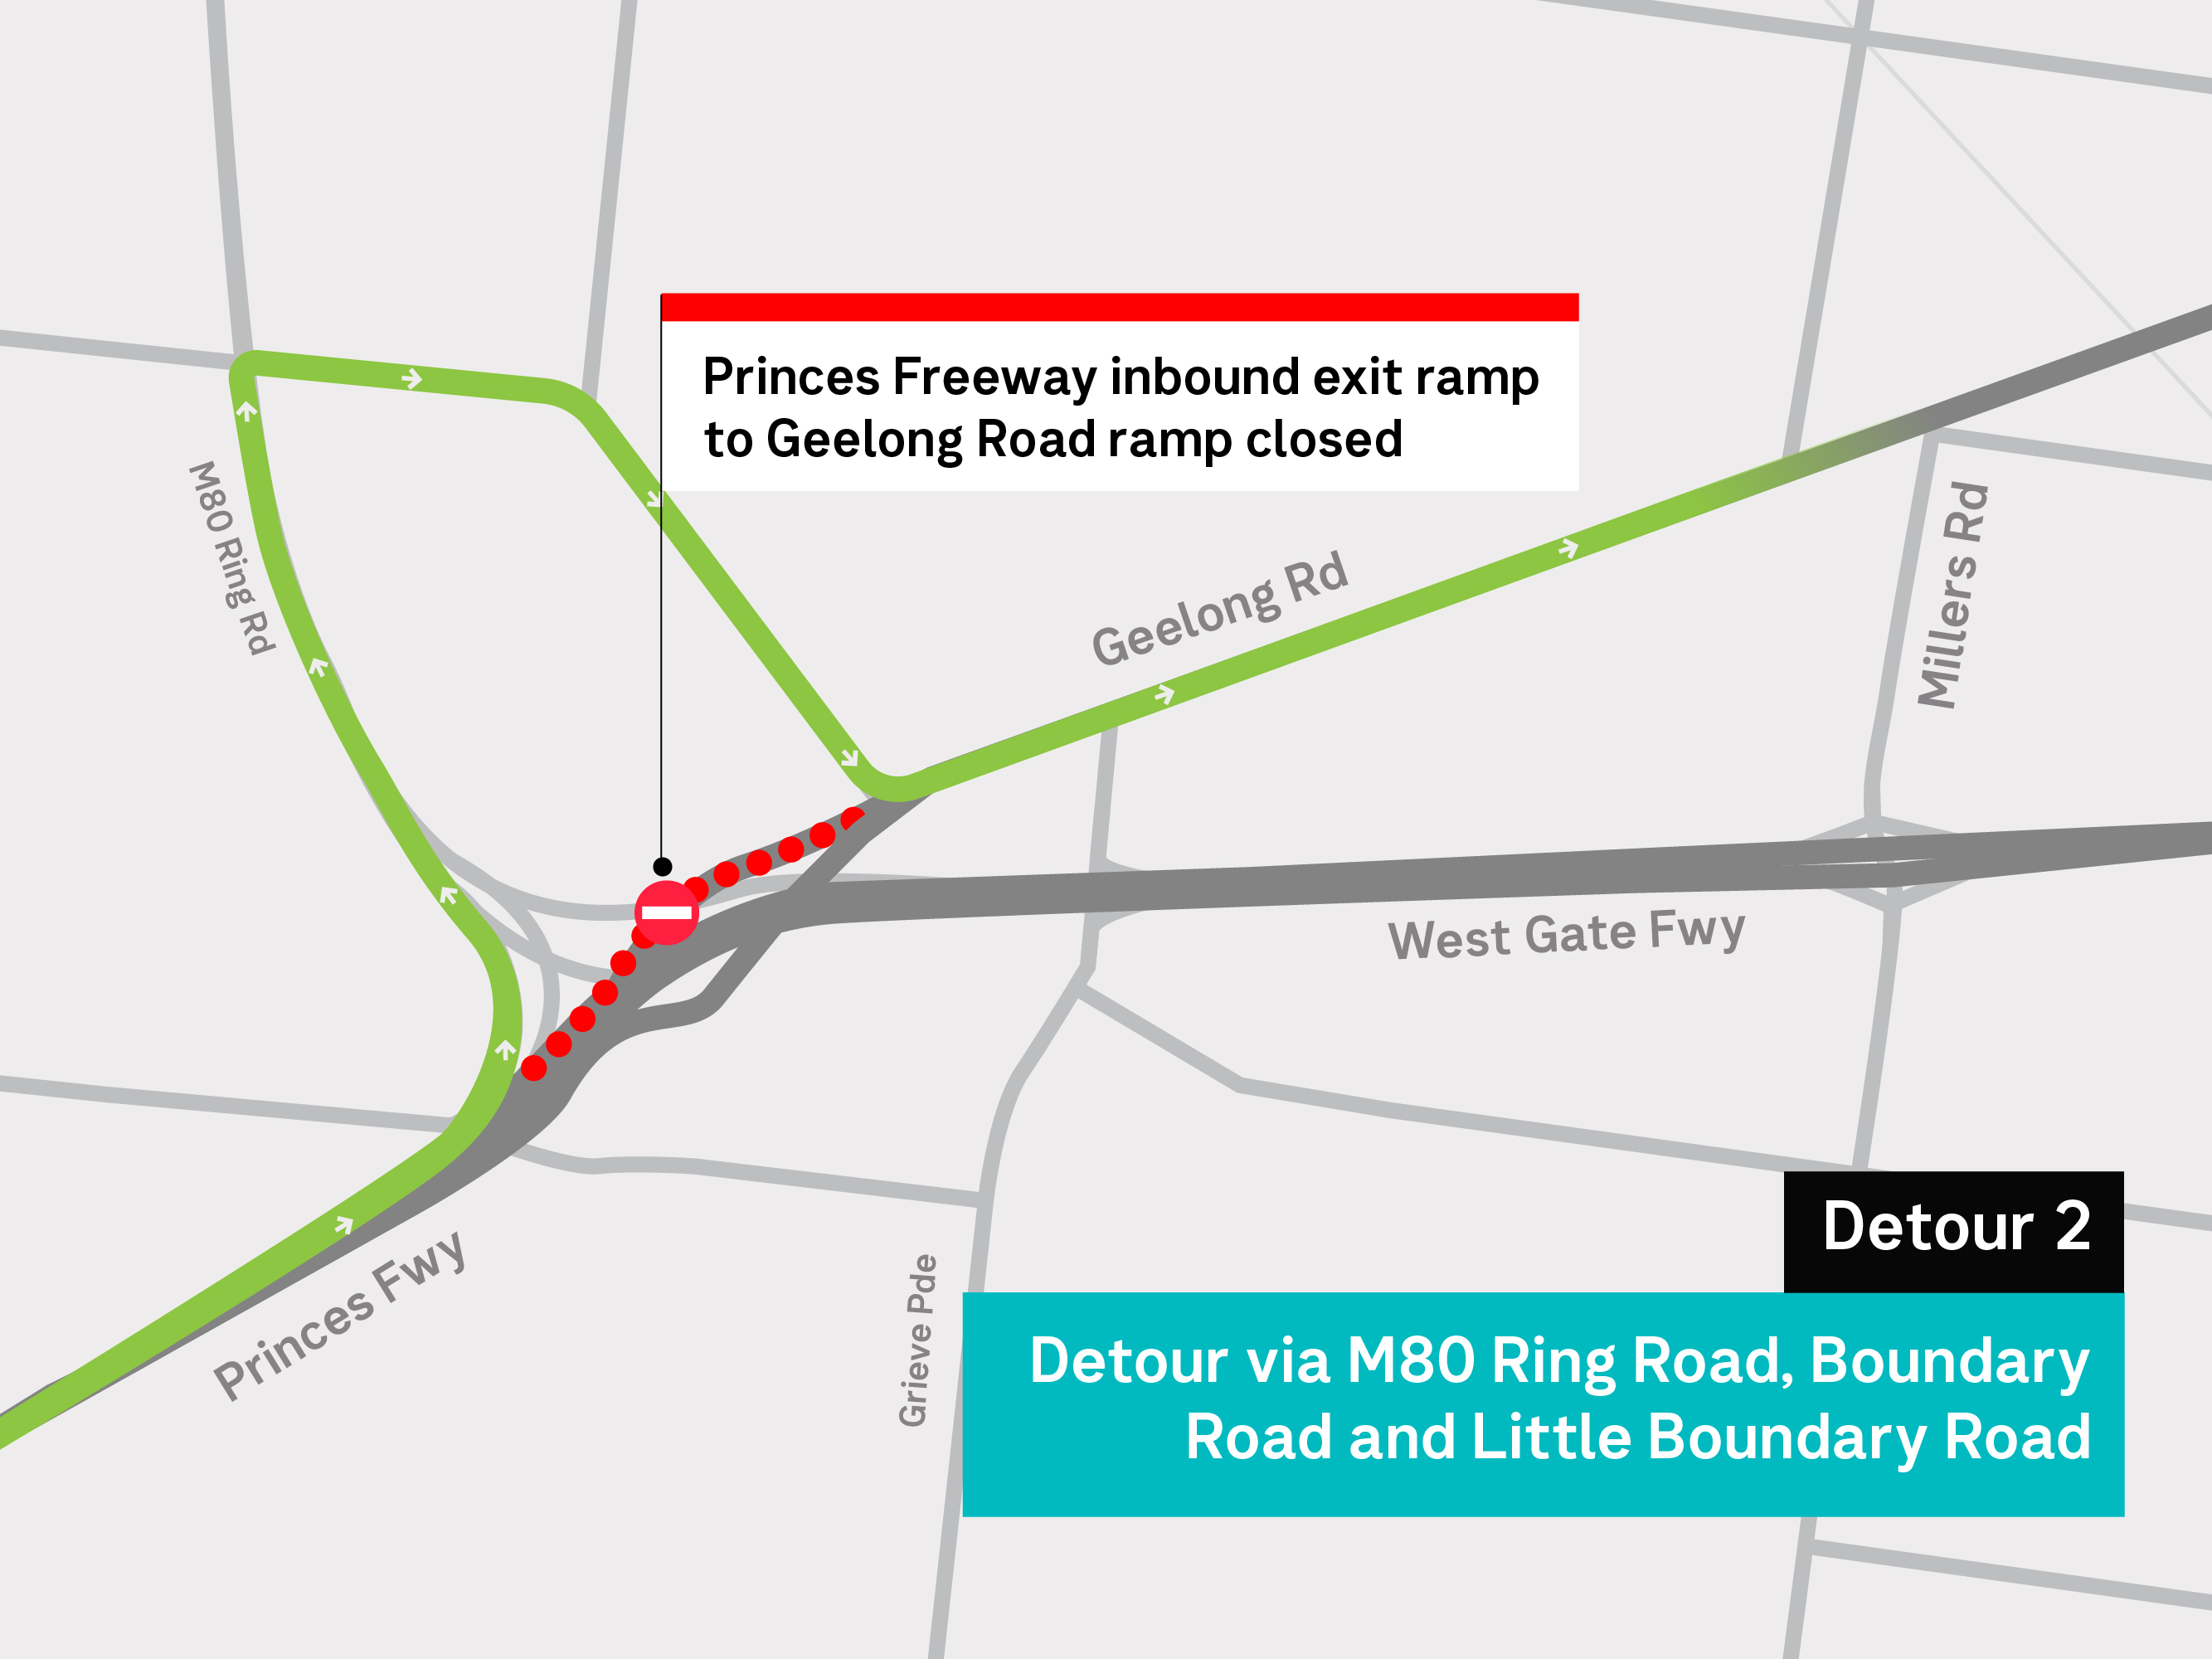 Spring construction works detour map for Princes Freeway to Geelong Road ramp closure. Suggested detour route via M80 Ring Road, Boundary Road and Little Boundary Roads. For more information, please refer to the web text.